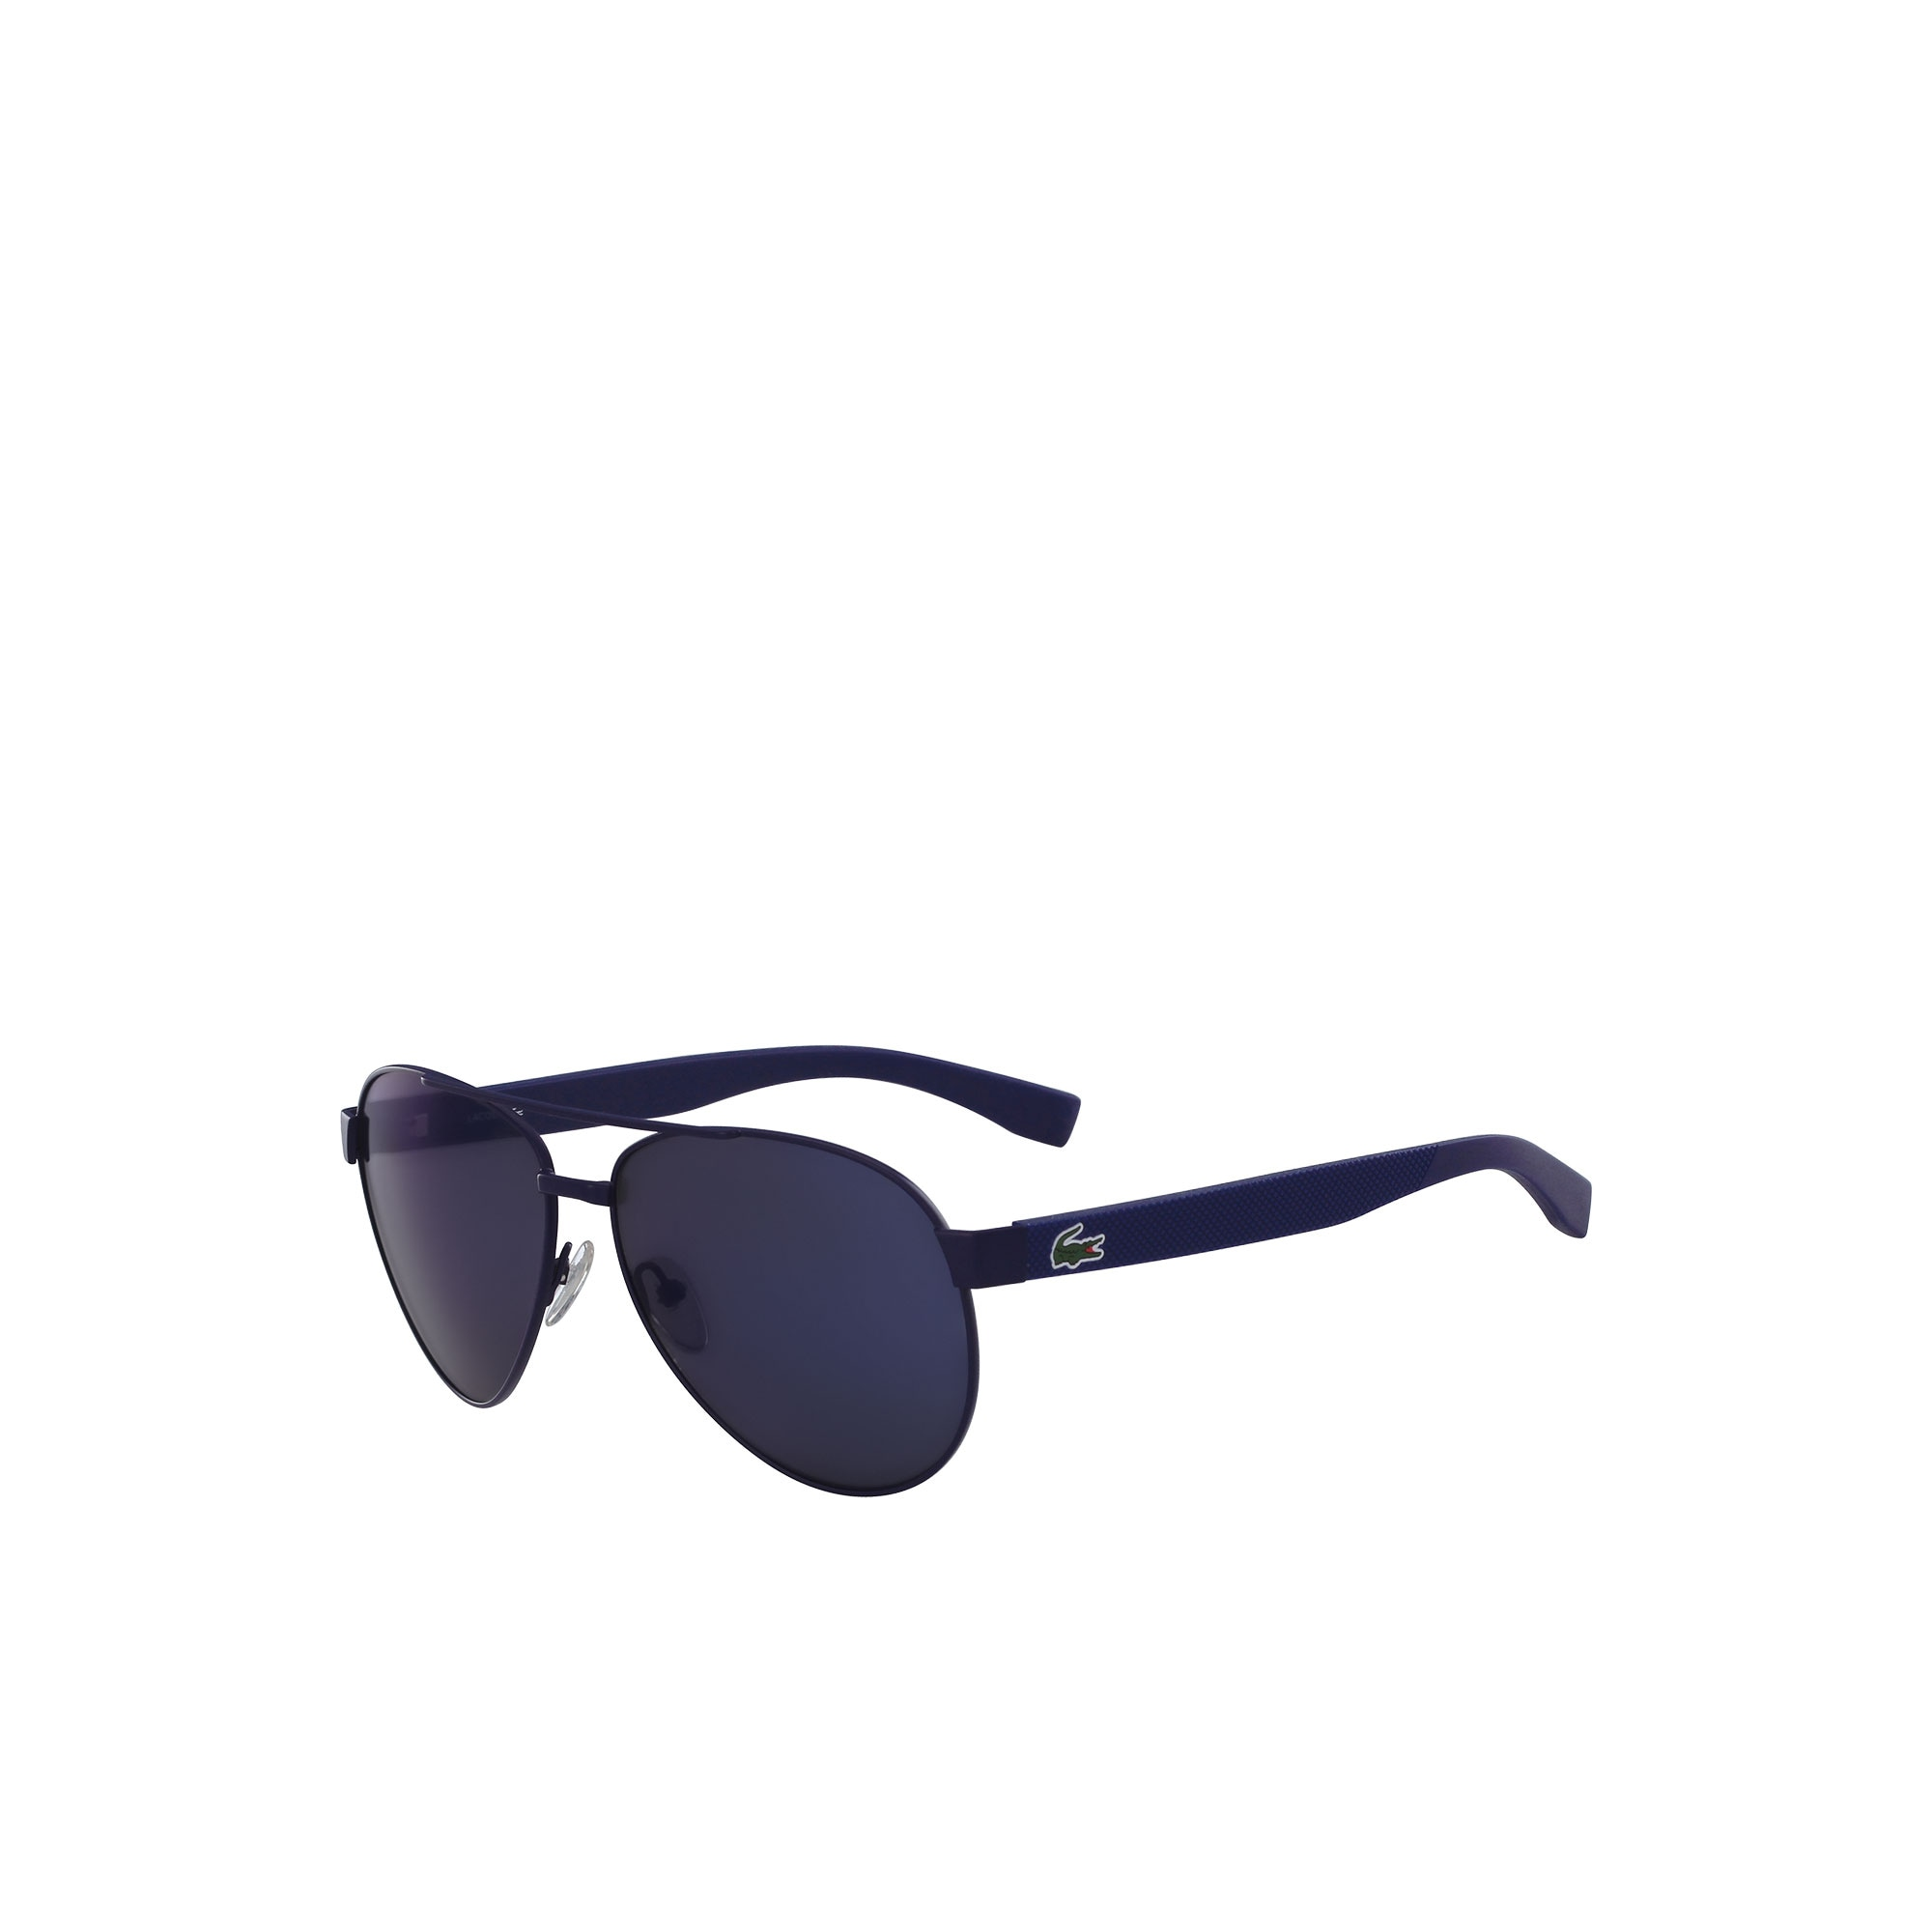 L.12.12 Sunglasses